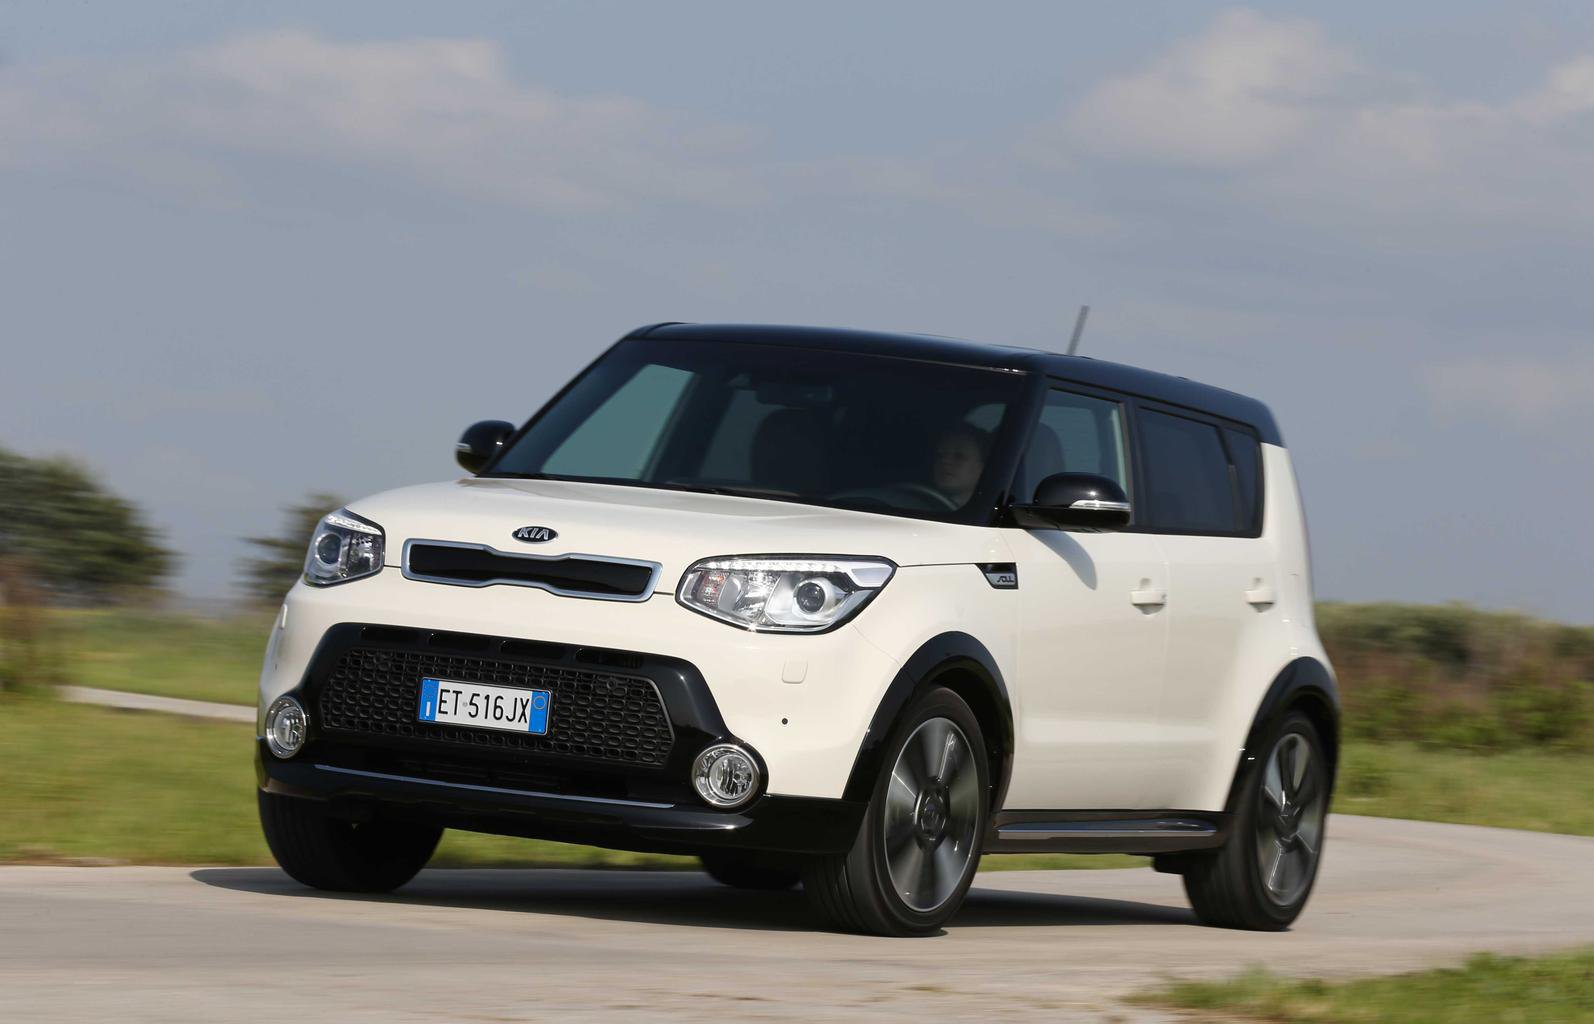 2014 Kia Soul prices and specs revealed